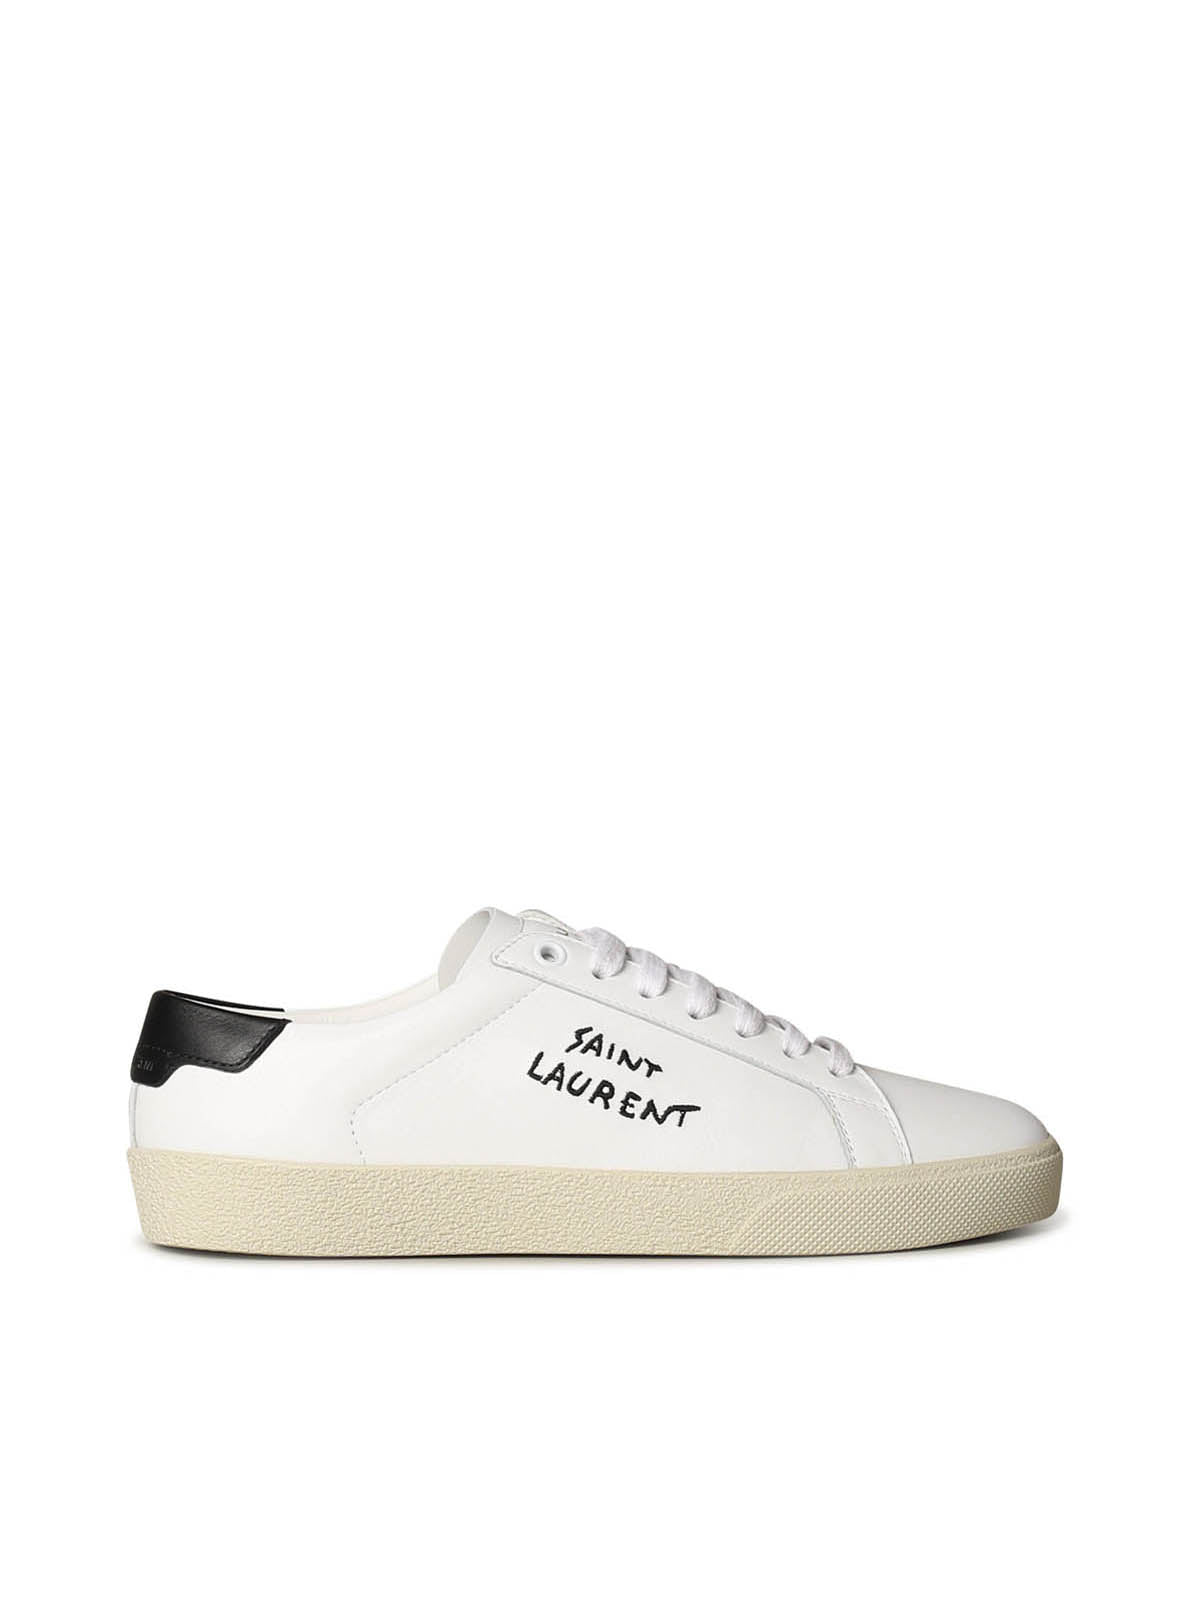 SL/06 low-top sneakers